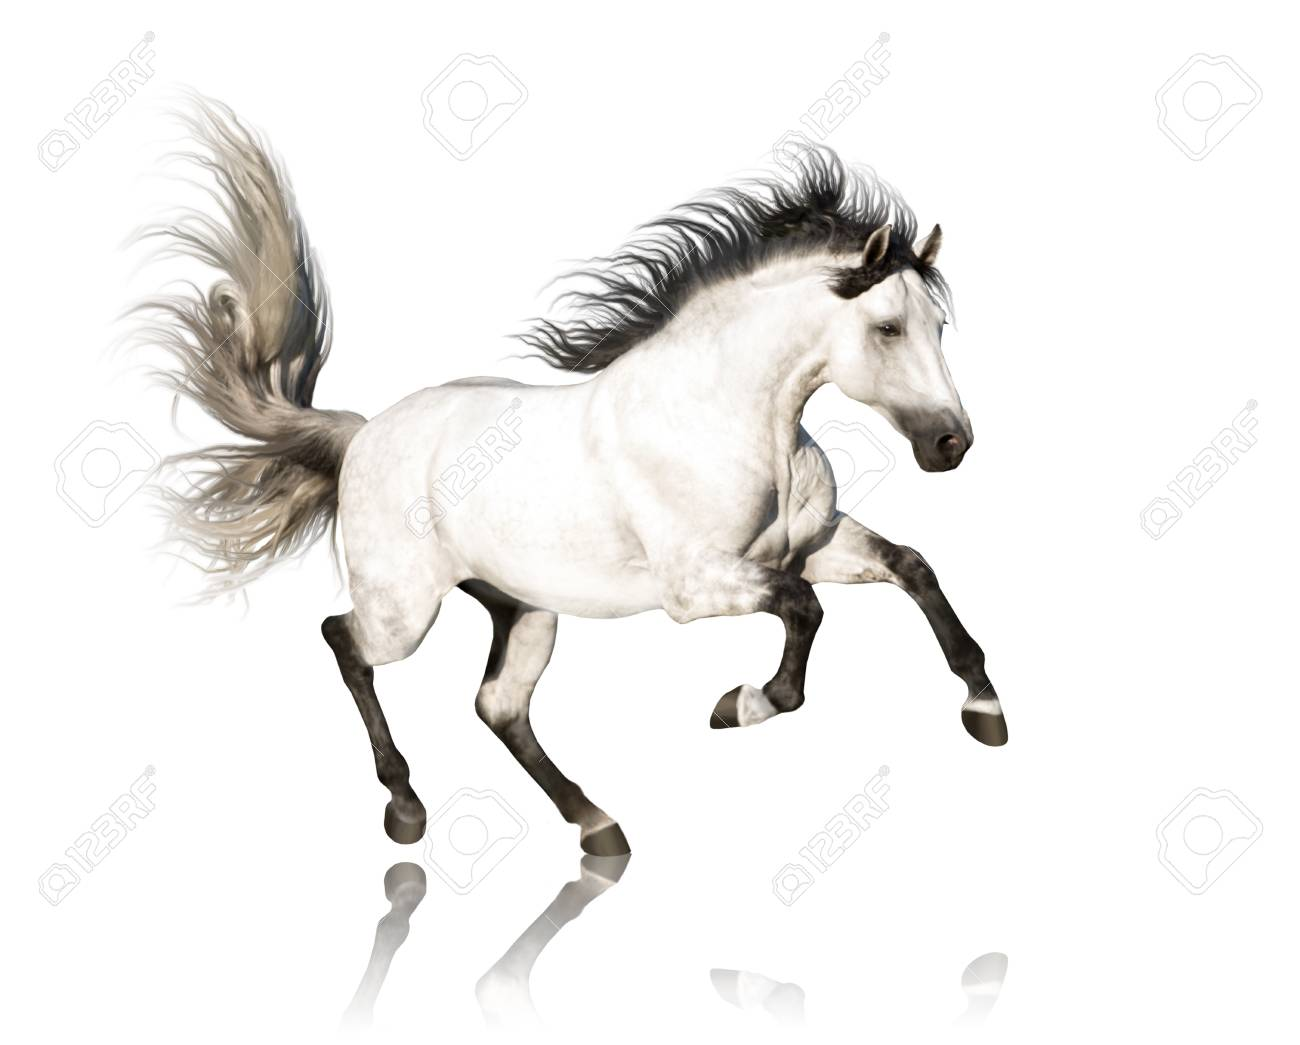 White Andalusian Horse With Black Legs And Mane Galloping Isolated Stock Photo Picture And Royalty Free Image Image 106643438